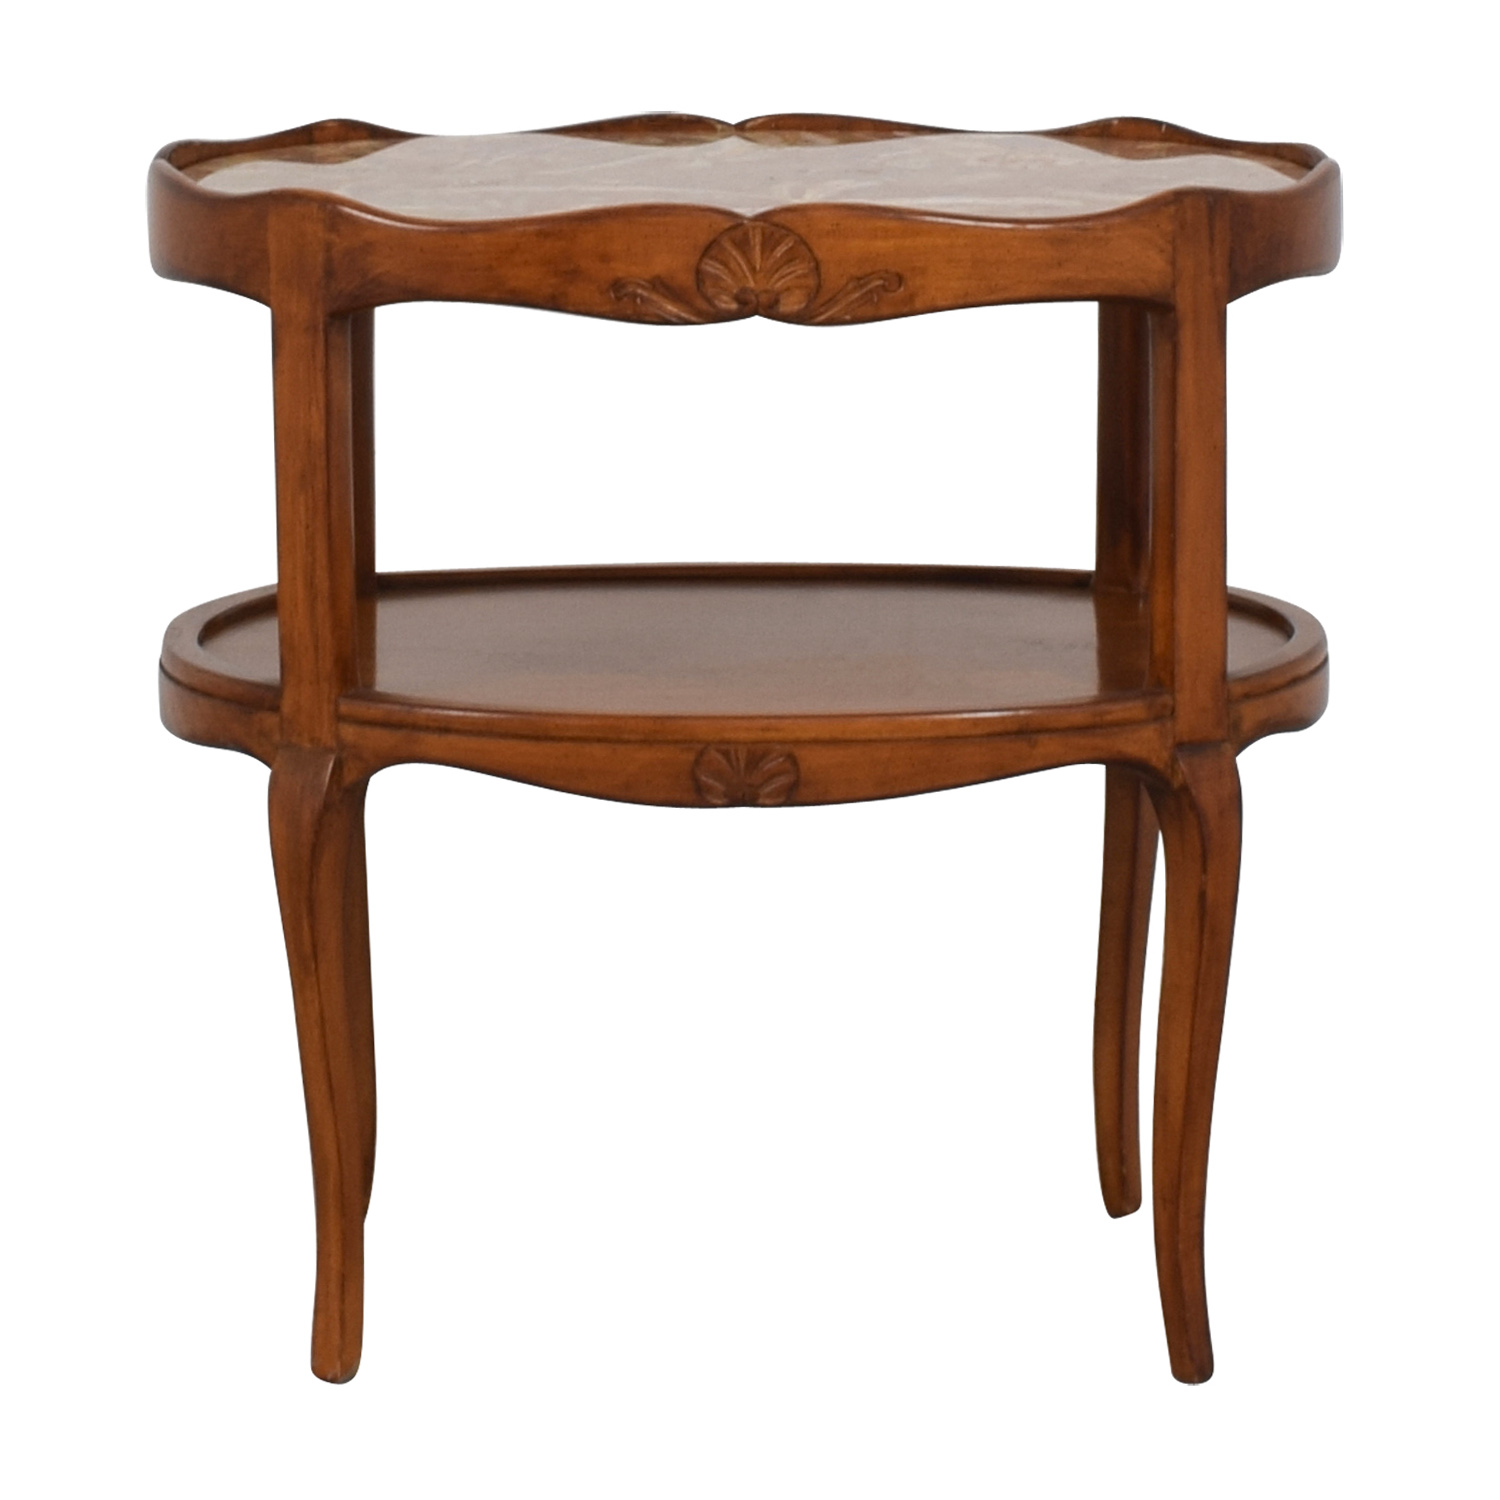 Cherry Wood with Marble Top Oval Side Table used